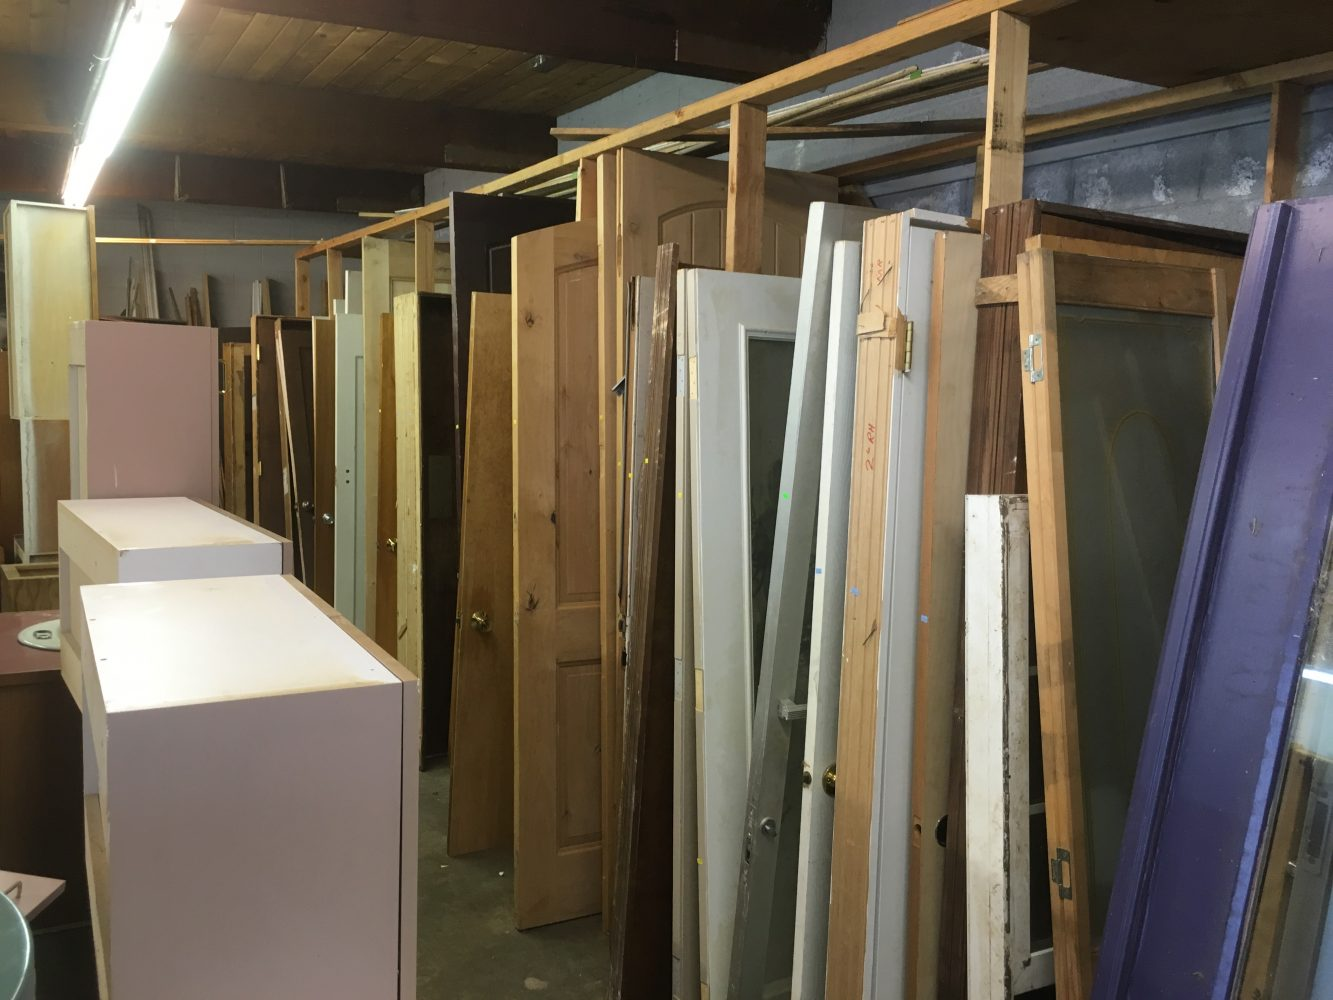 Restore Coos County Habitat For Humanity